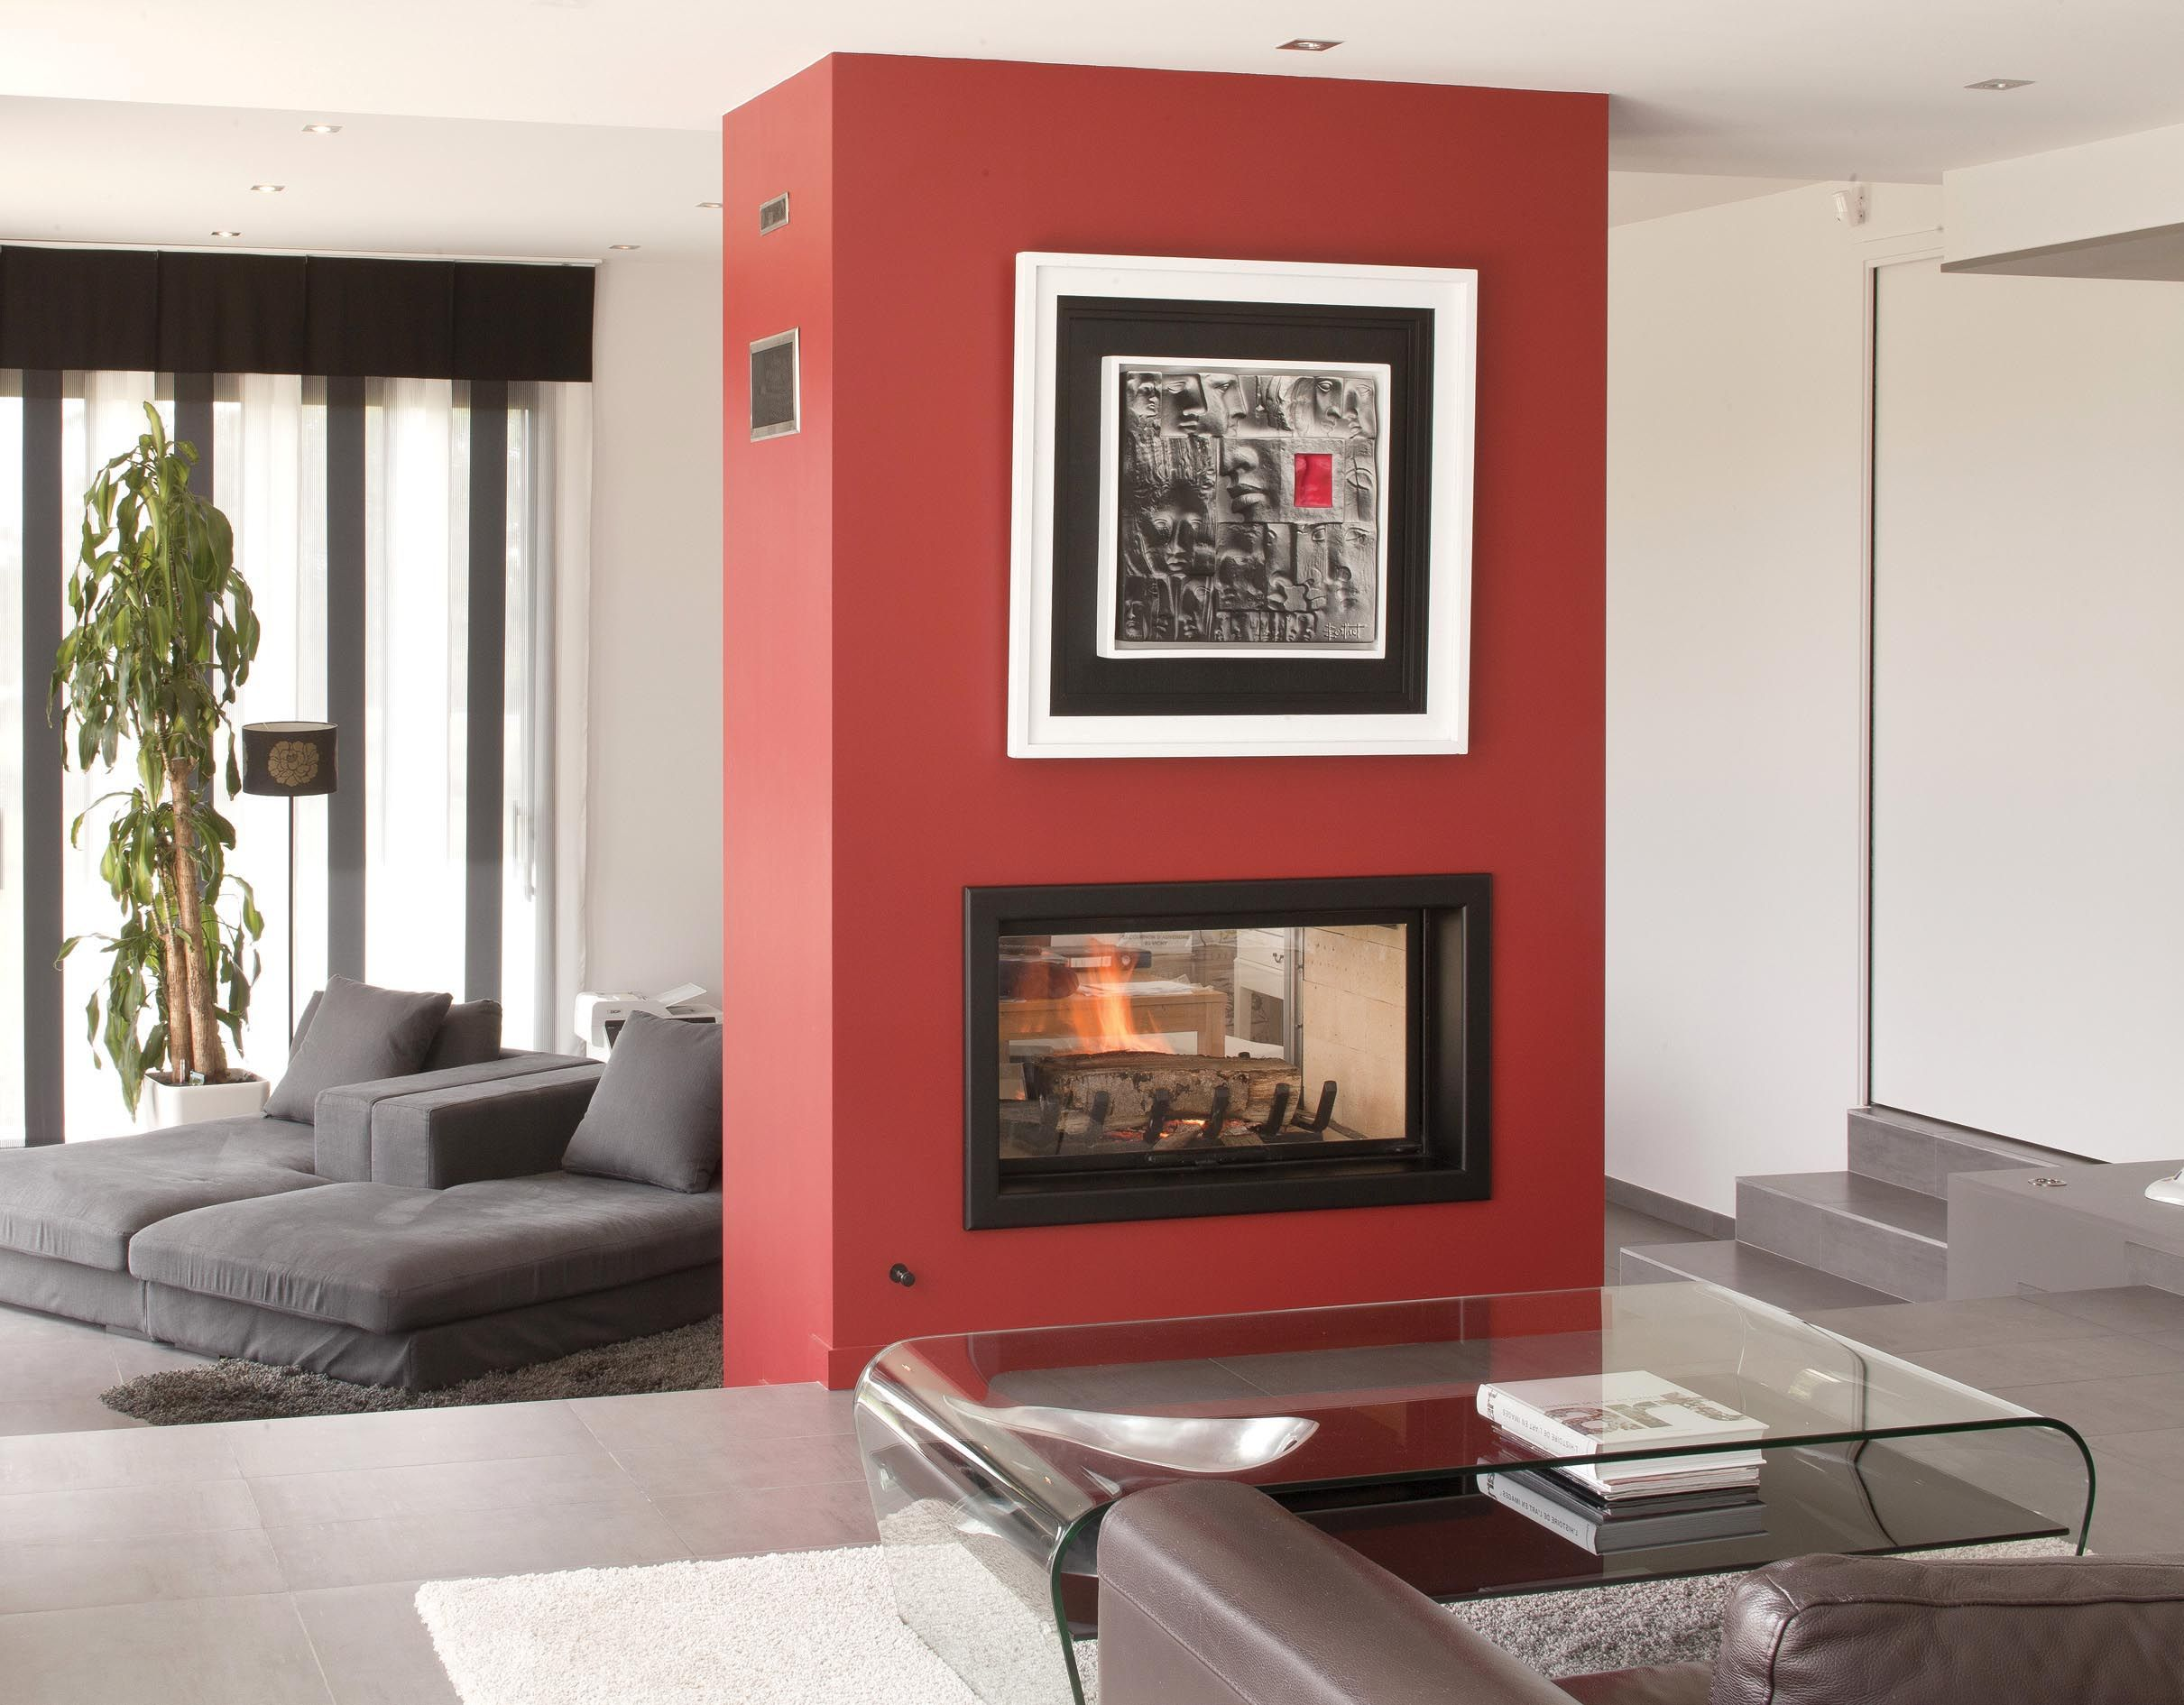 axis h1200ds double sided fireplace the artisan engineered axis